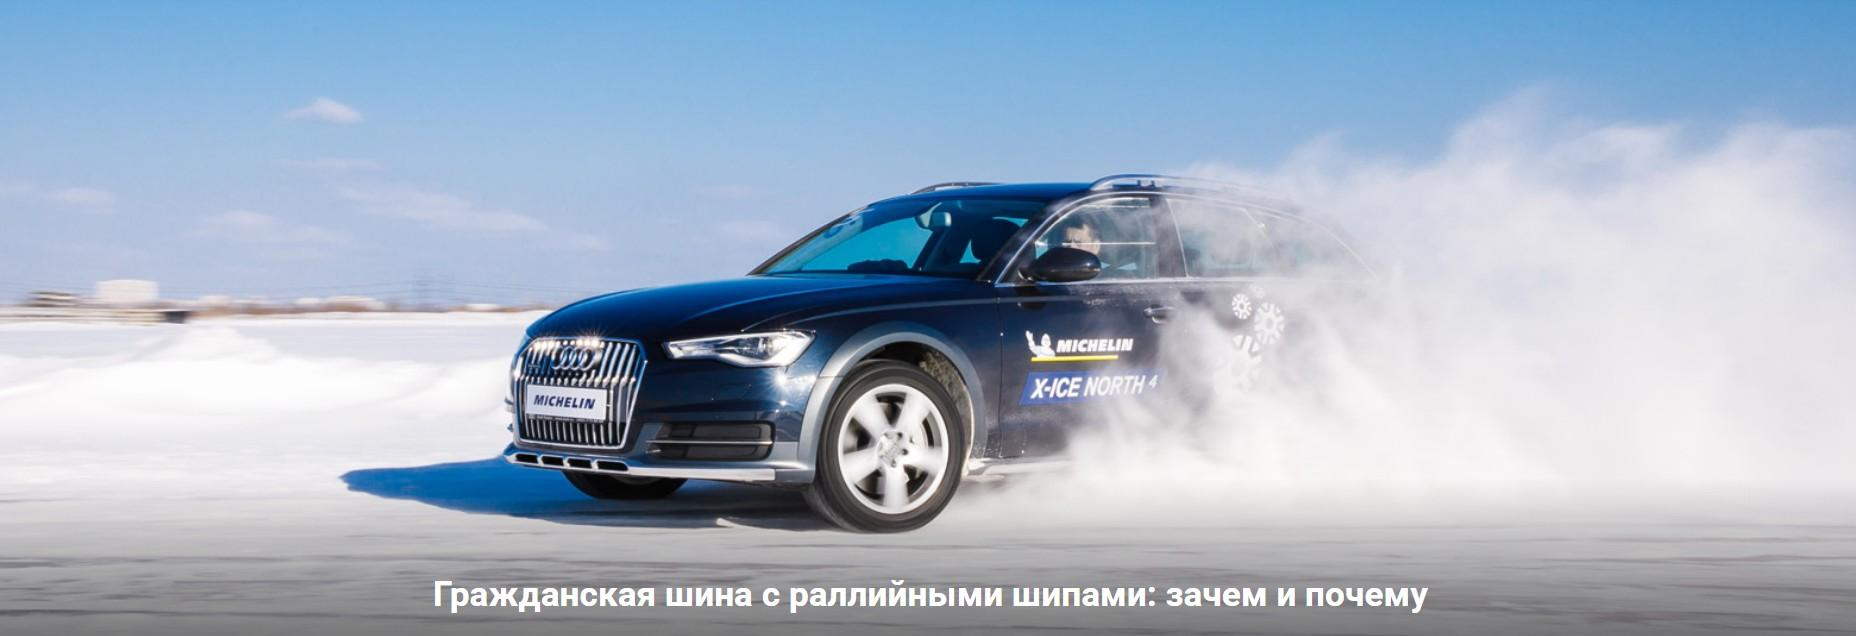 Авто@Mail.ru: Тест зимних шин MICHELIN X-Ice North 4